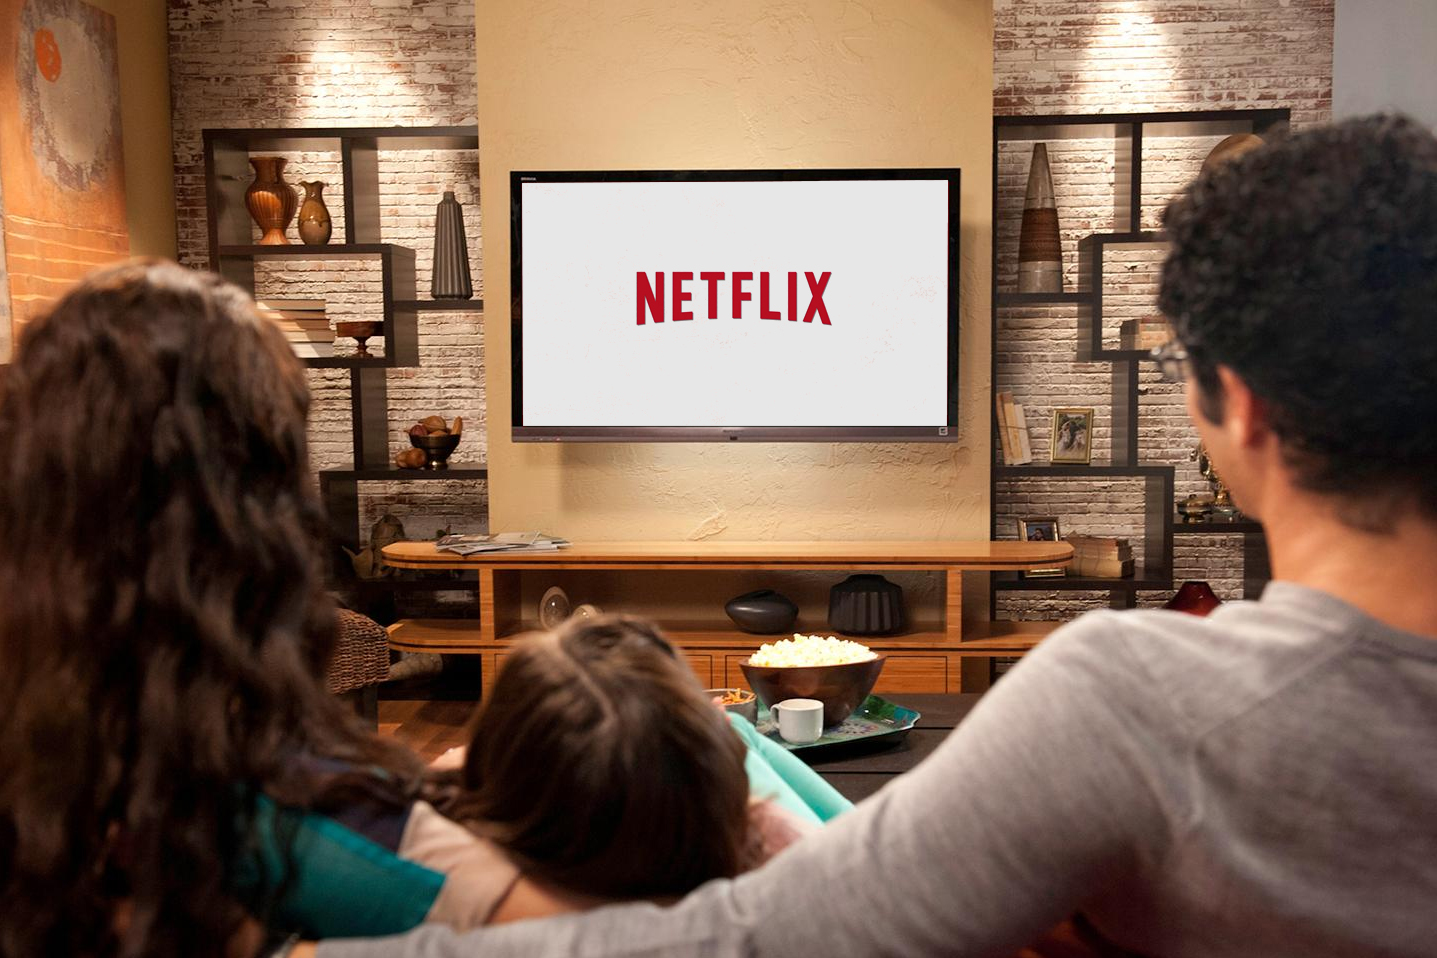 Netflix Signs With Comcast to Bring Streaming to Cable TV